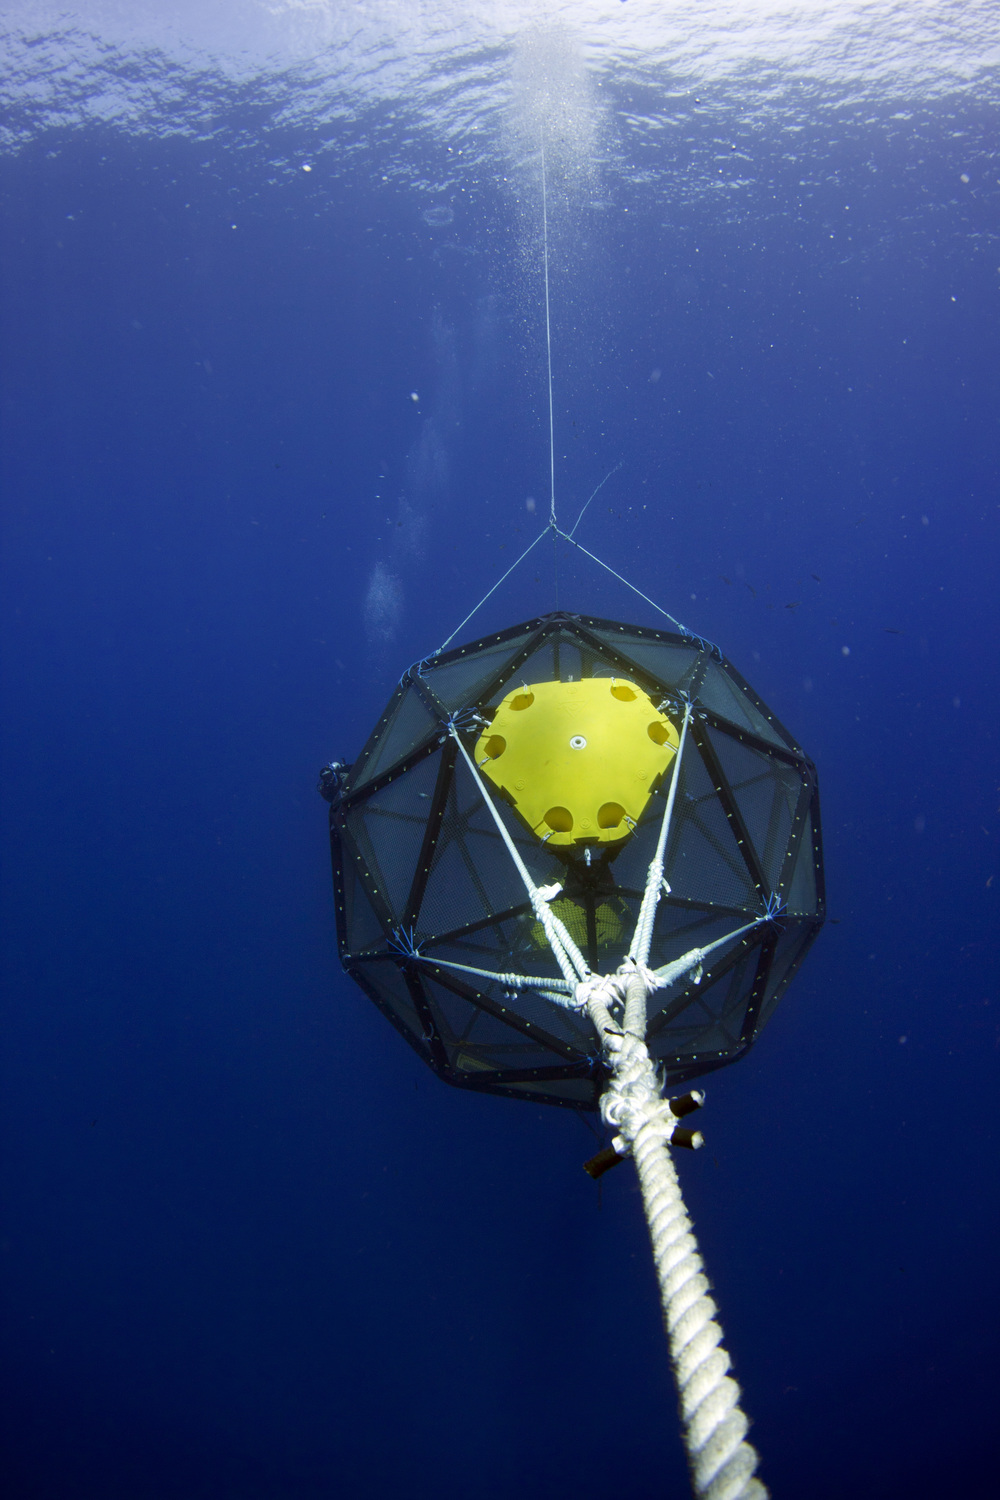 The Aquapod viewed along the tether line from the single point mooring, floating some 6,000 feet above the sea floor.